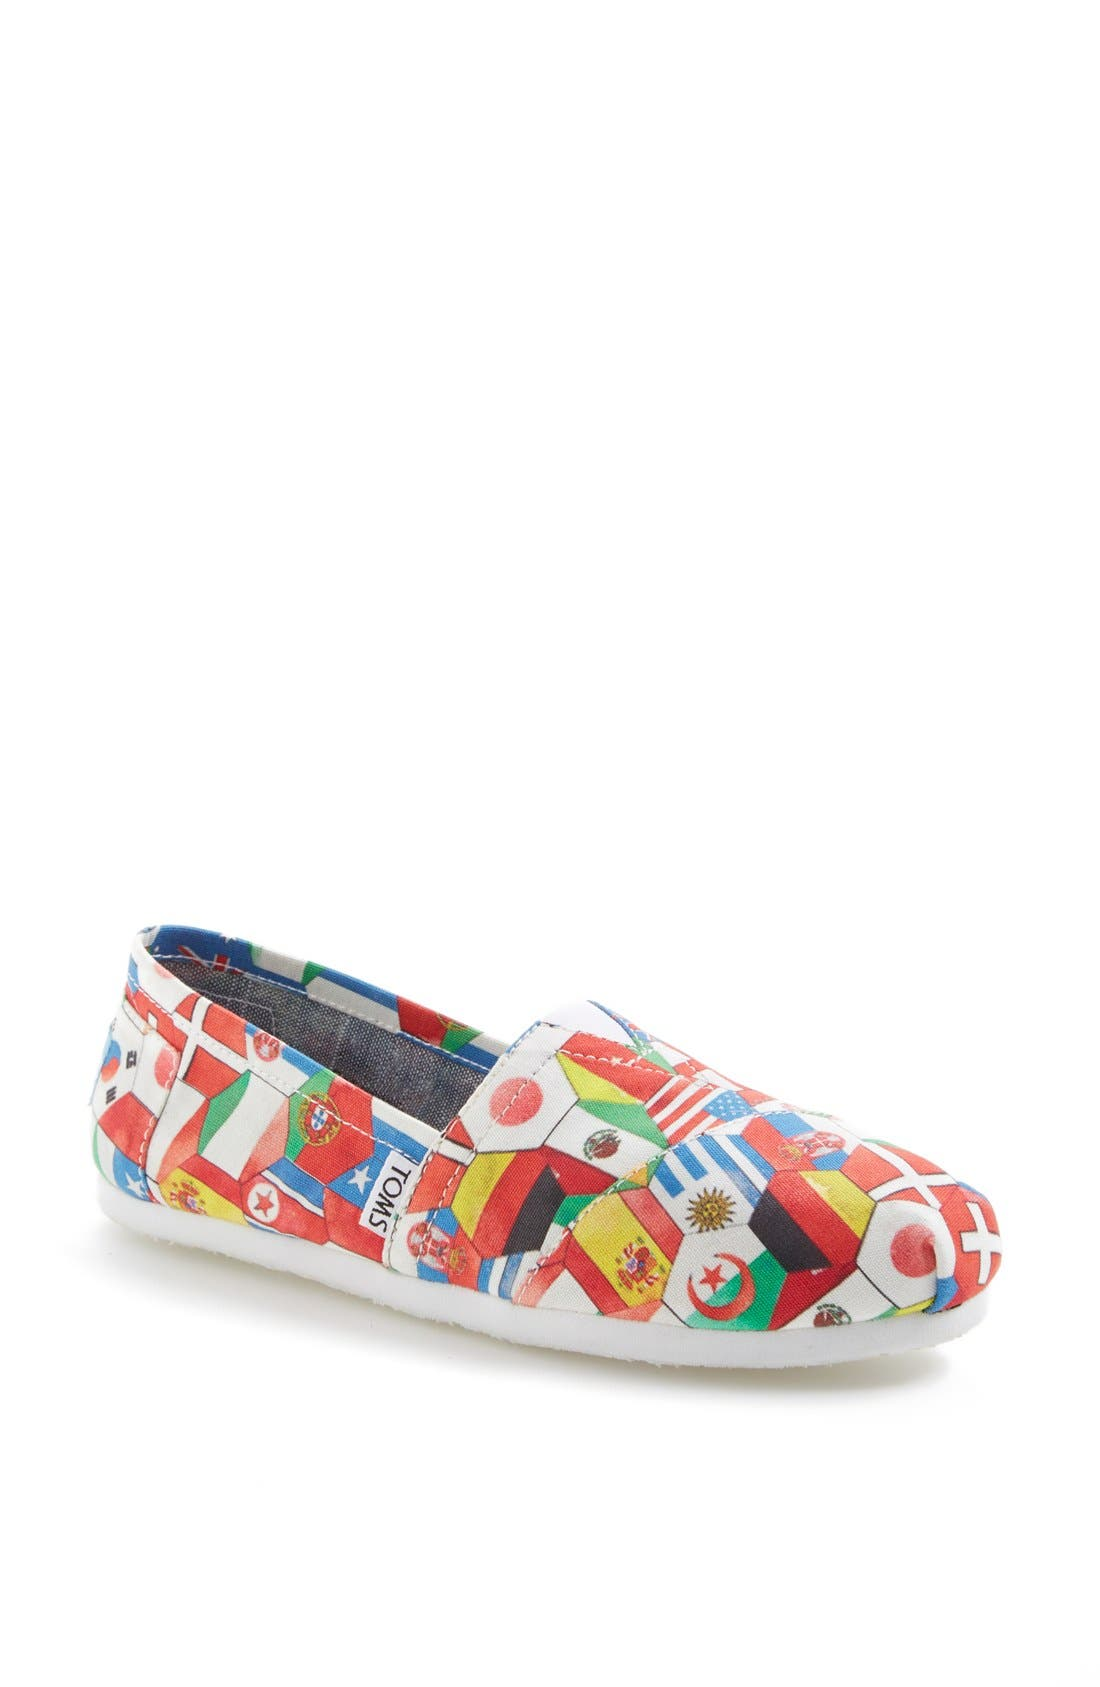 Alternate Image 1 Selected - TOMS 'Classic - World Cup' Slip-On (Women)